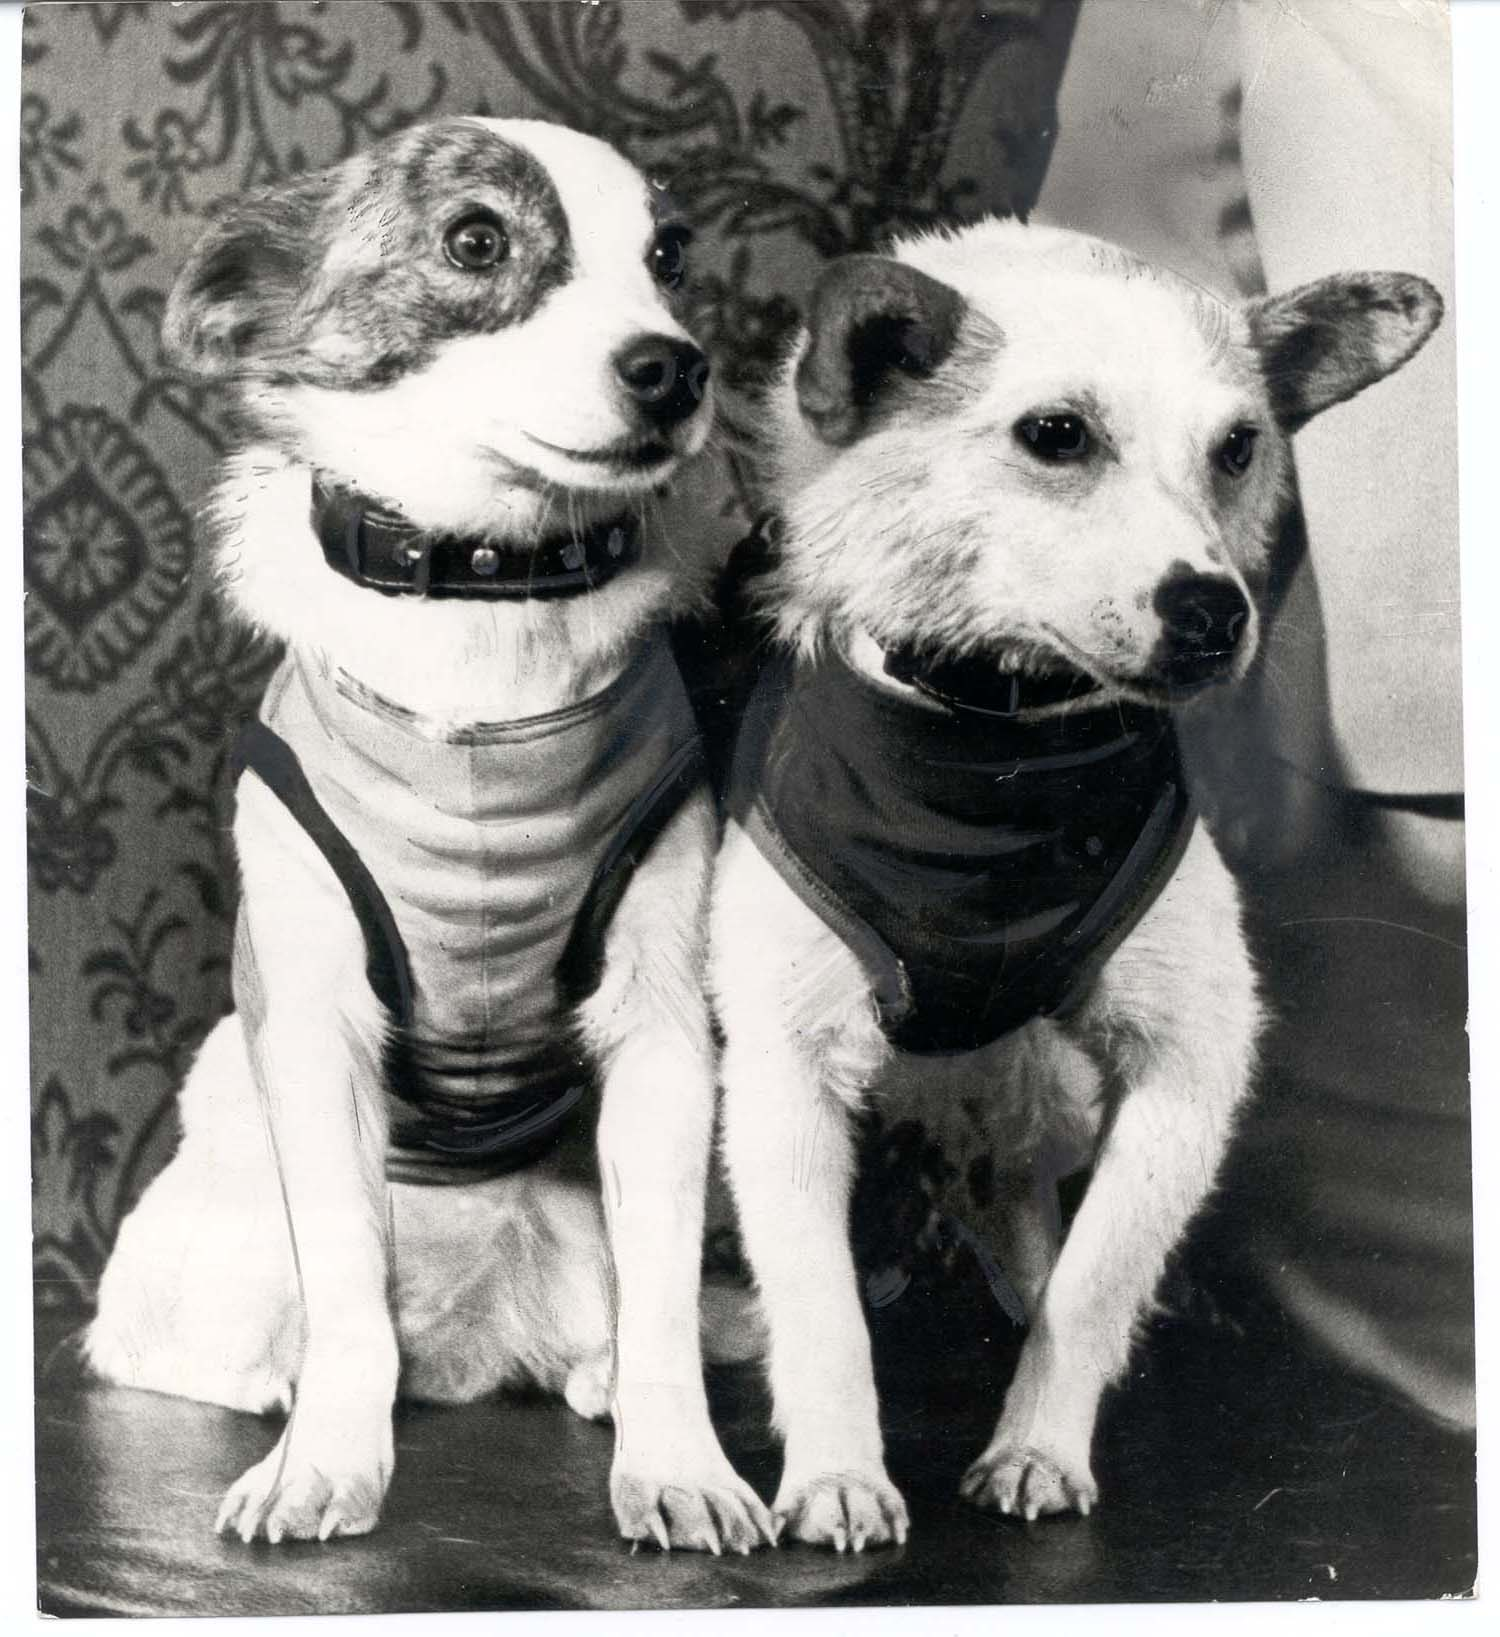 Dogs in Space!